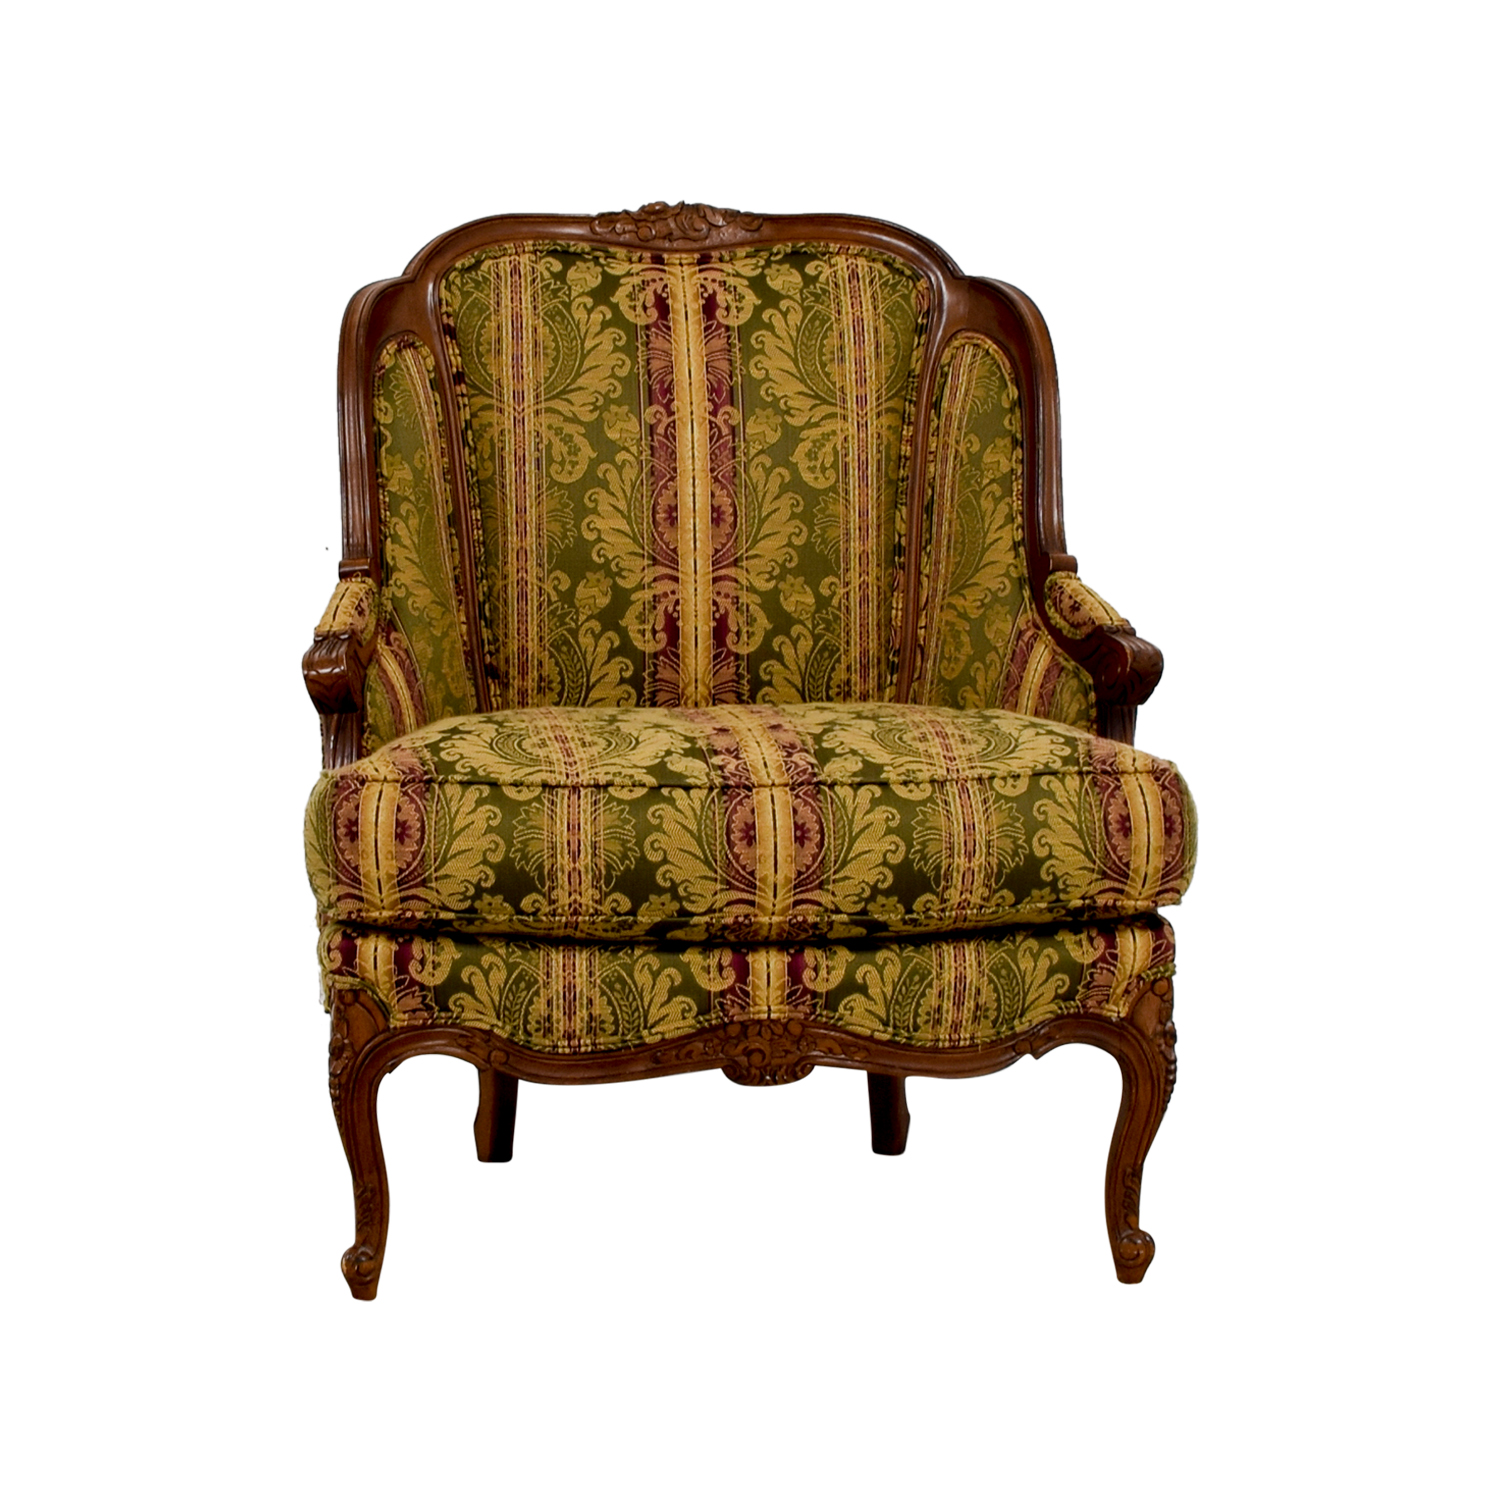 65 Off Drexel Heritage Bergere Green Gold And Burgundy Chair Chairs